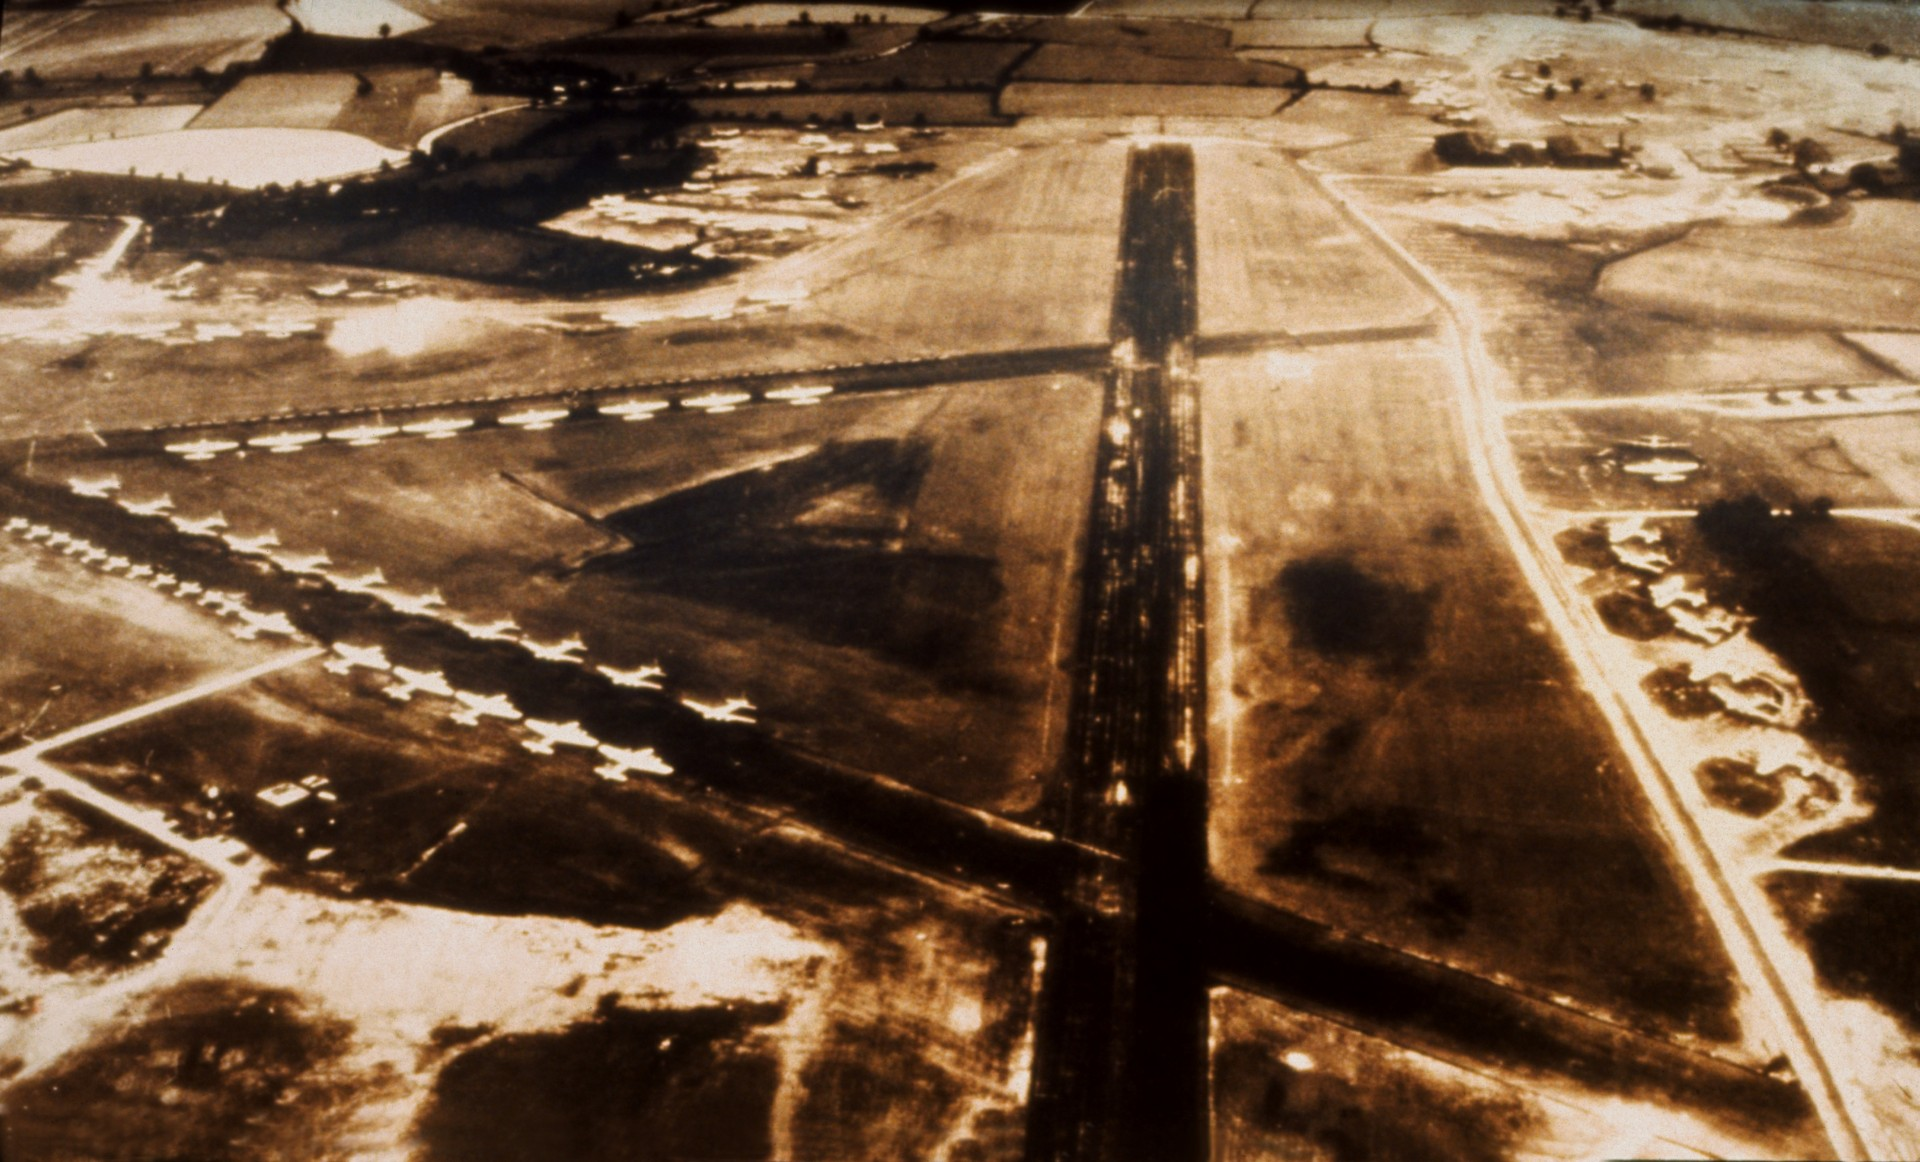 London Stansted began life as a American Airforce Second World War base in 1943.